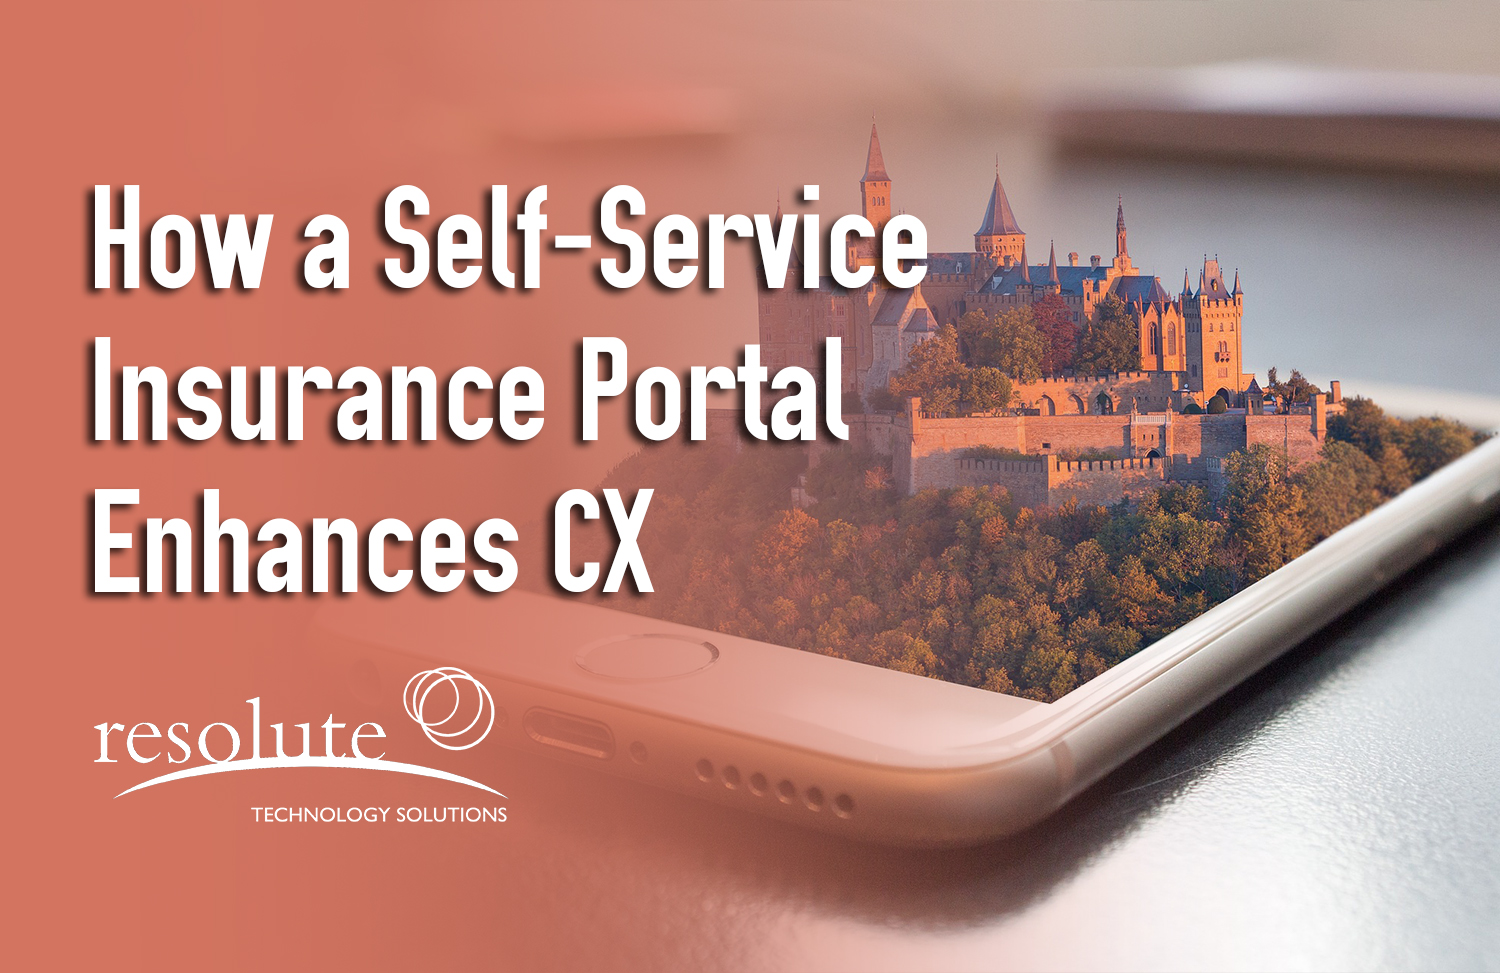 How an Insurance Self-Serve Portal Can Enhance My Customer Experience